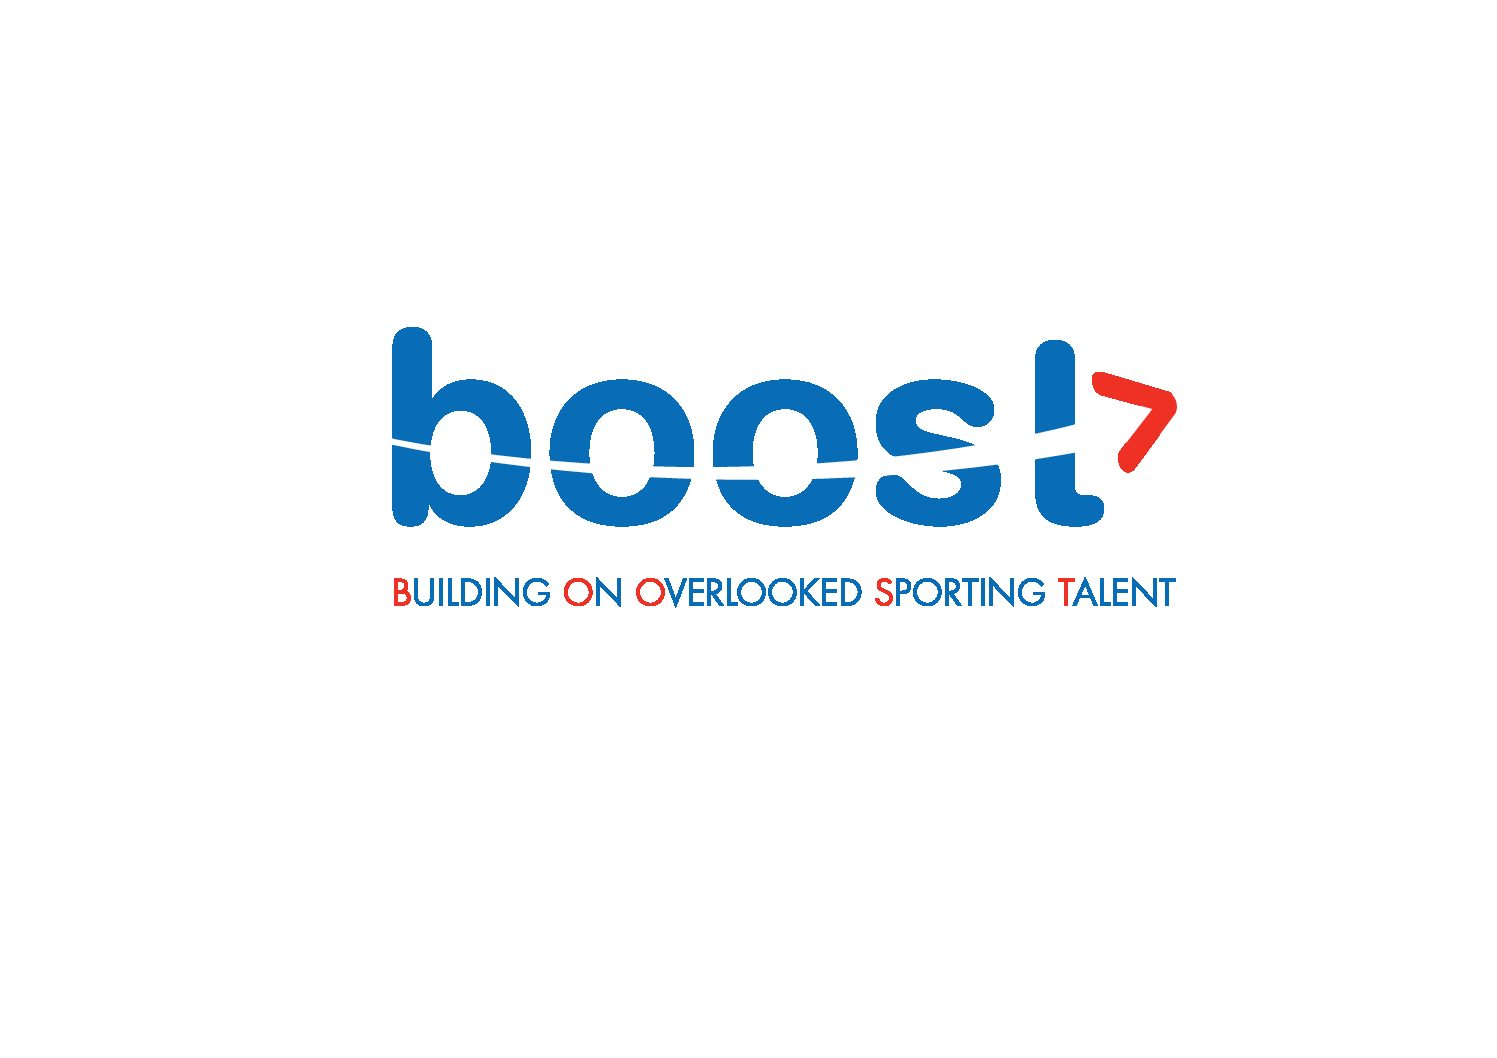 https://hhsc.org.uk/wp-content/uploads/2020/02/Boost-logo-vector-pdf.jpg